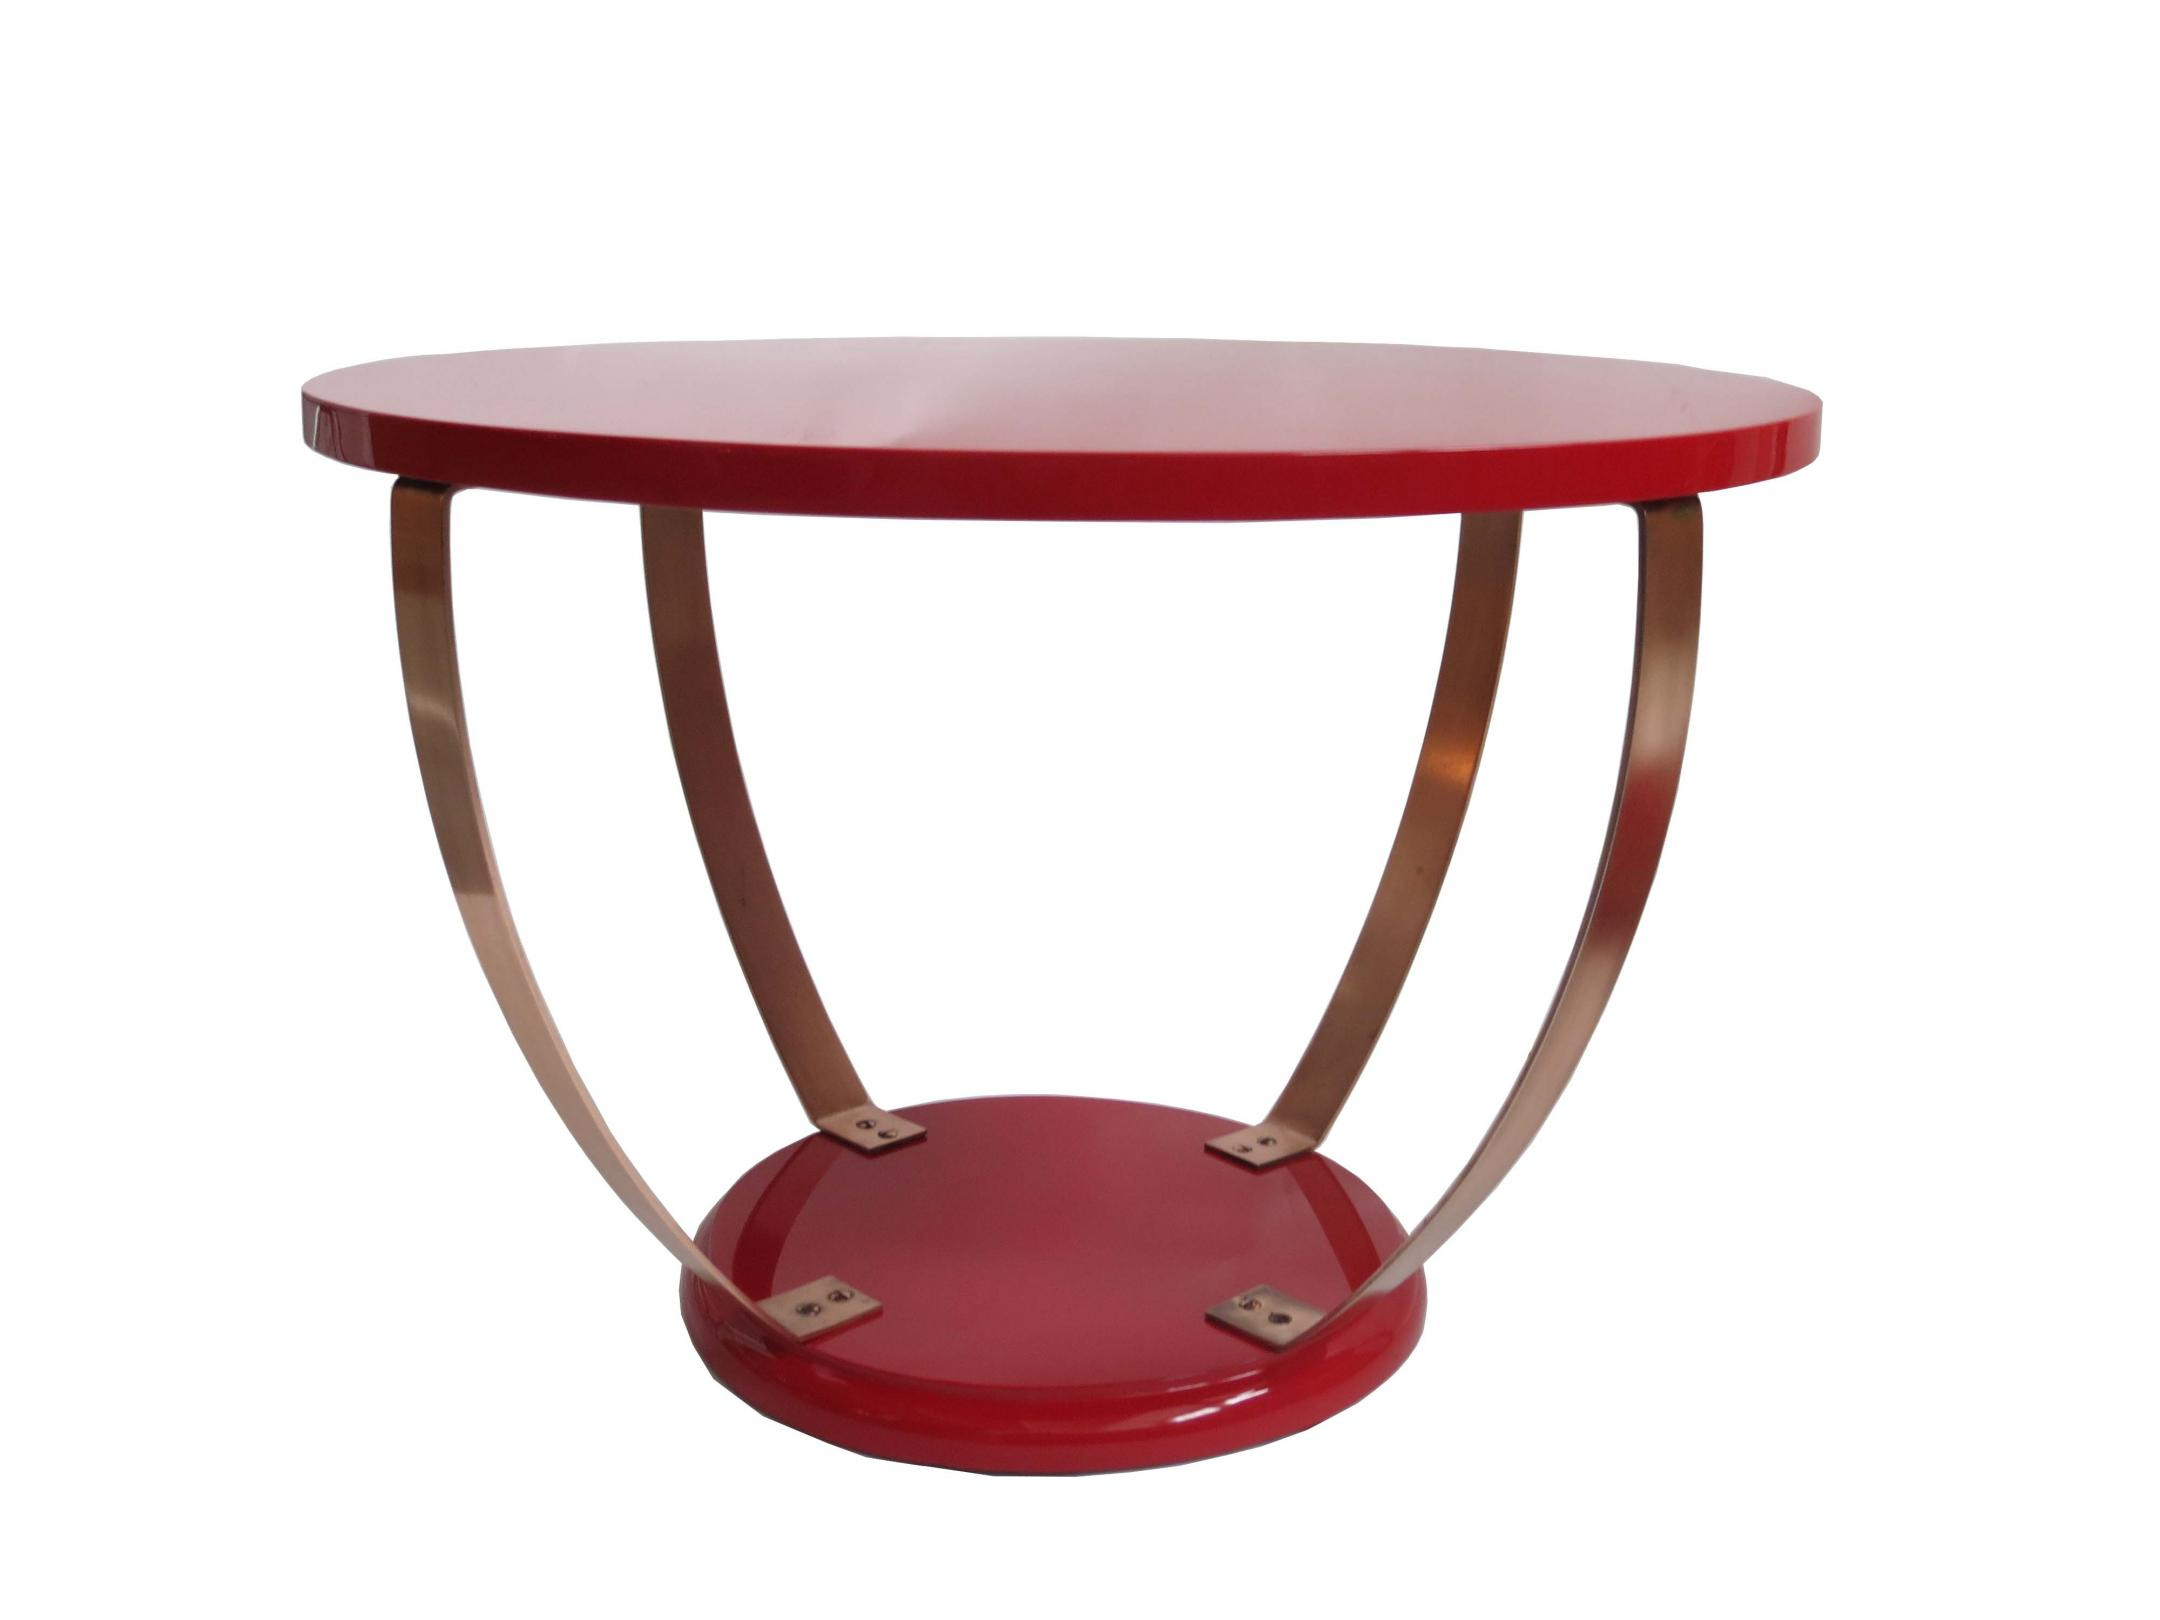 Red Lacquer American Art Deco Coffee Table